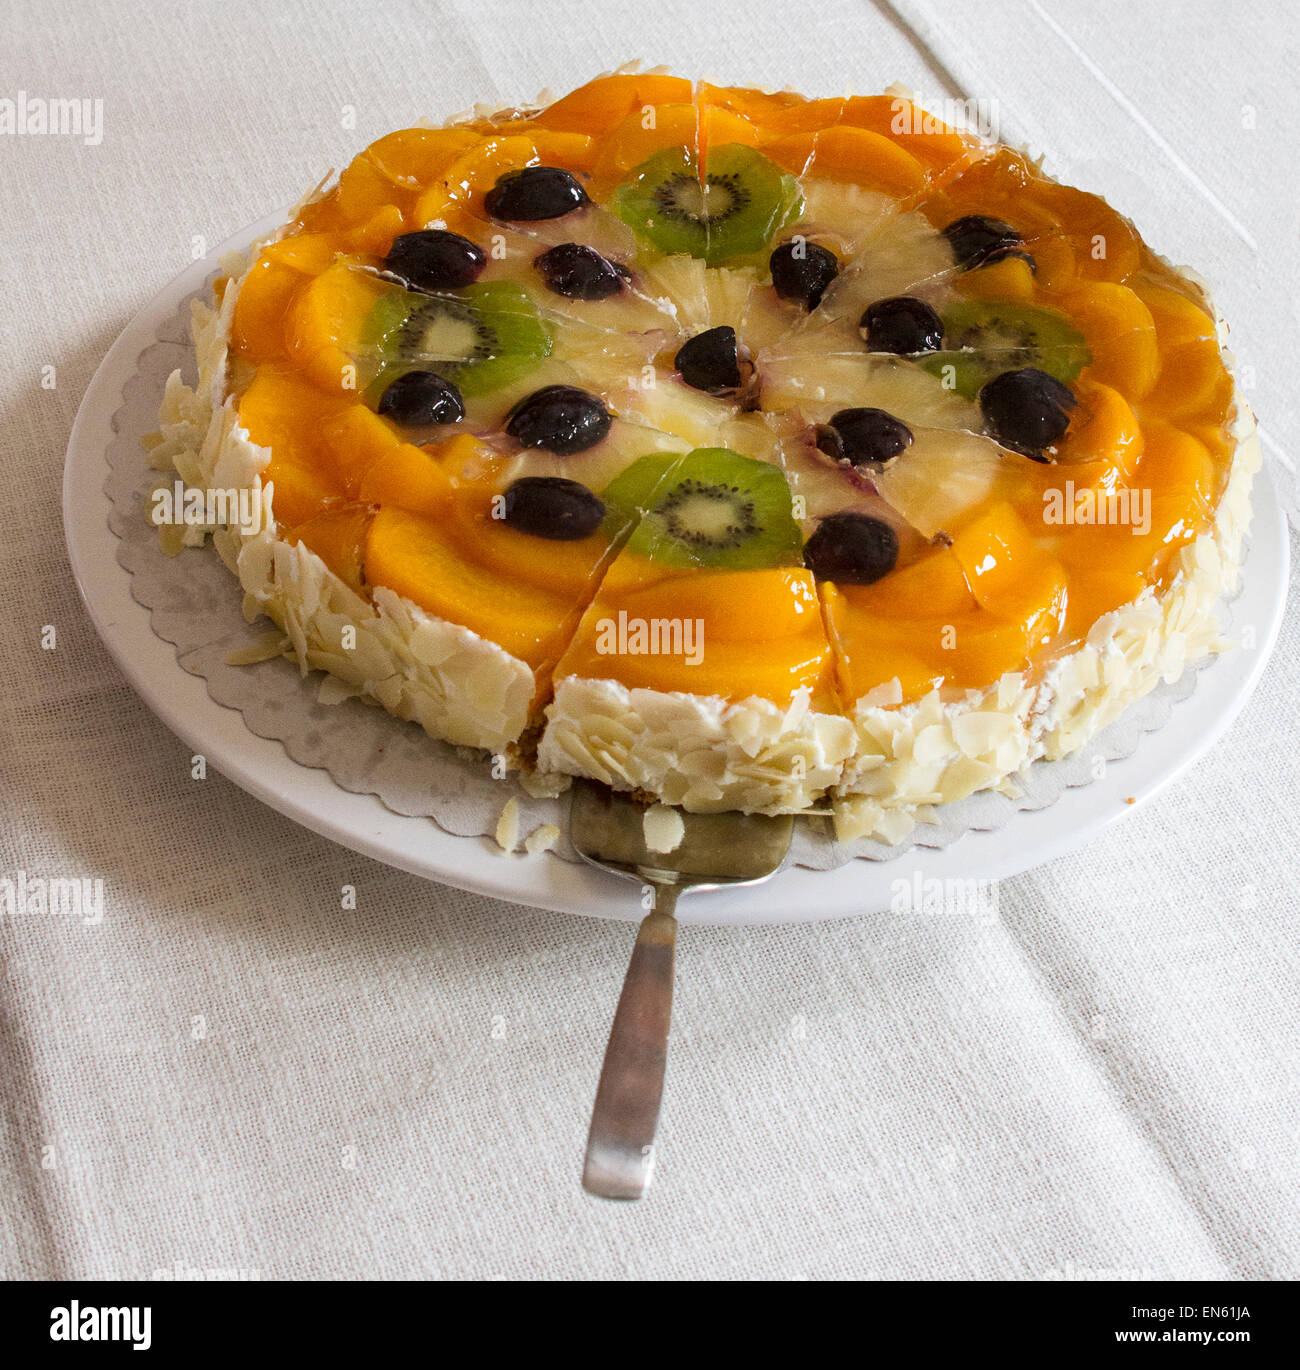 Fruit topped torte at German luncheon - Stock Image